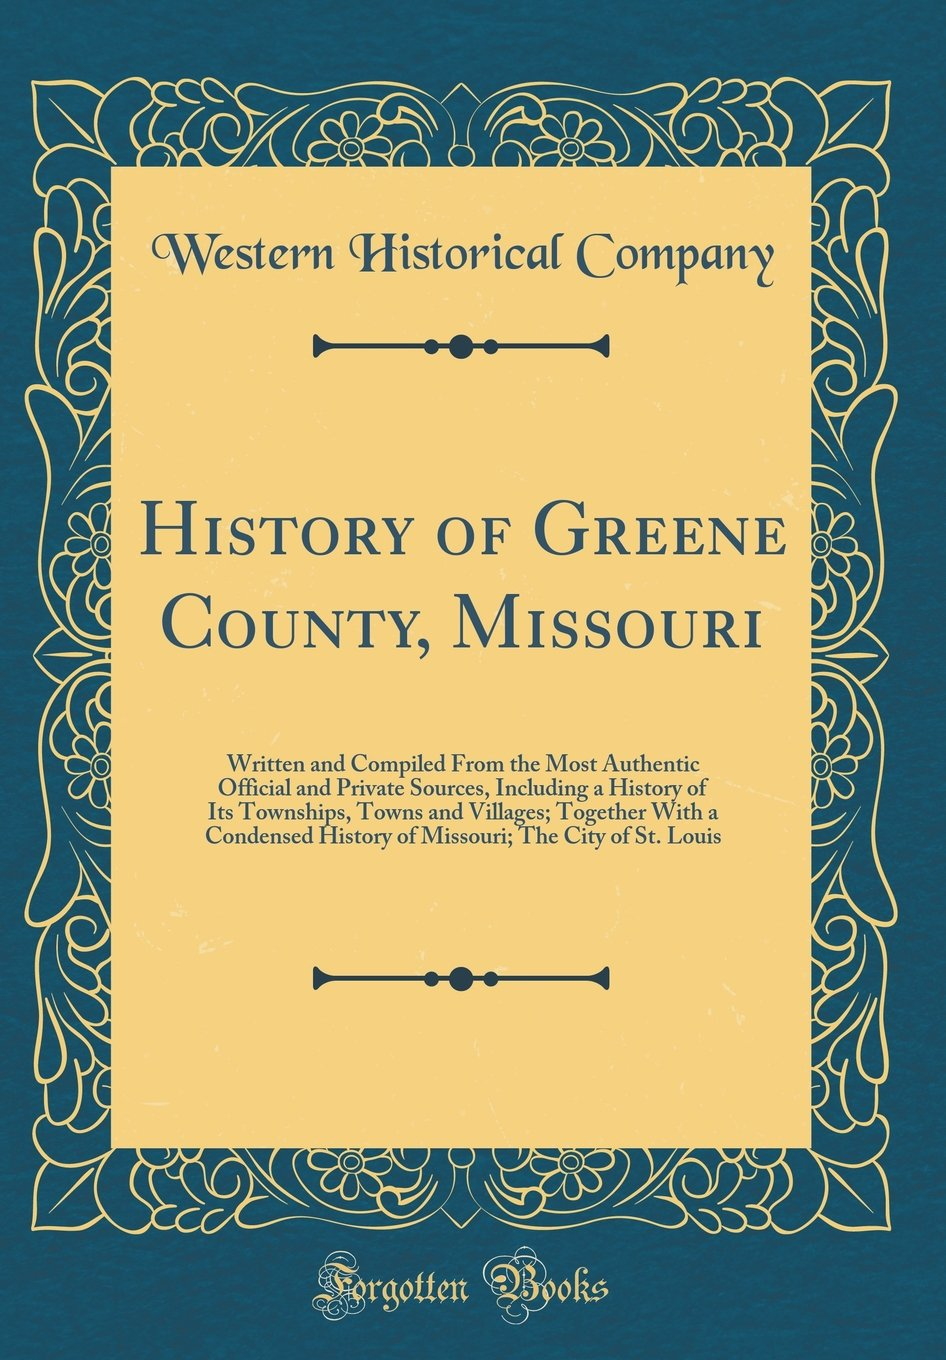 History of Greene County, Missouri: Written and Compiled From the Most Authentic Official and Private Sources, Including a History of Its Townships, ... History of Missouri; The City of St. Louis pdf epub